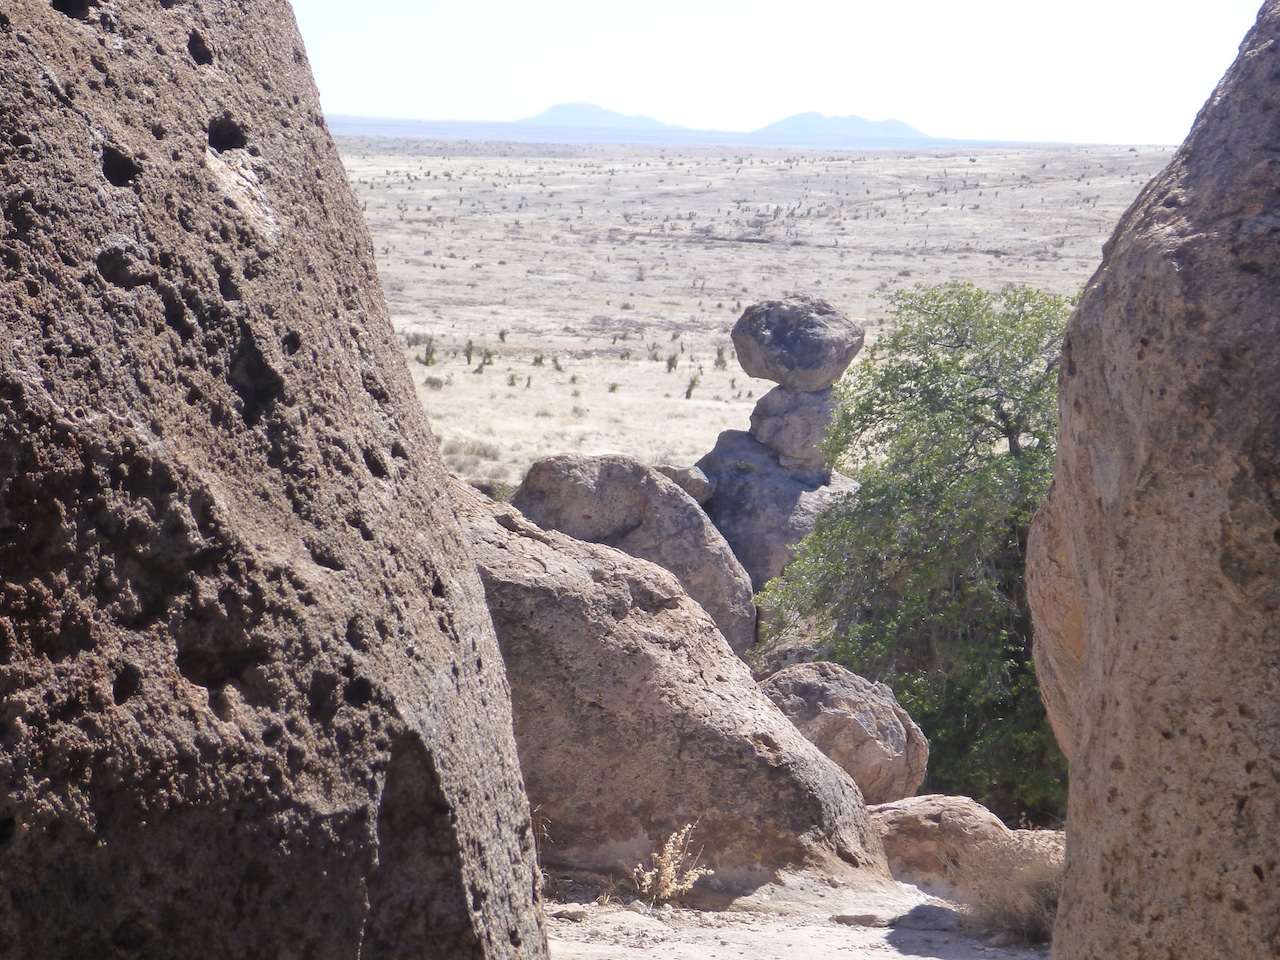 A View From The Top Of A Large Rock Formation In The City Of Rocks State Park